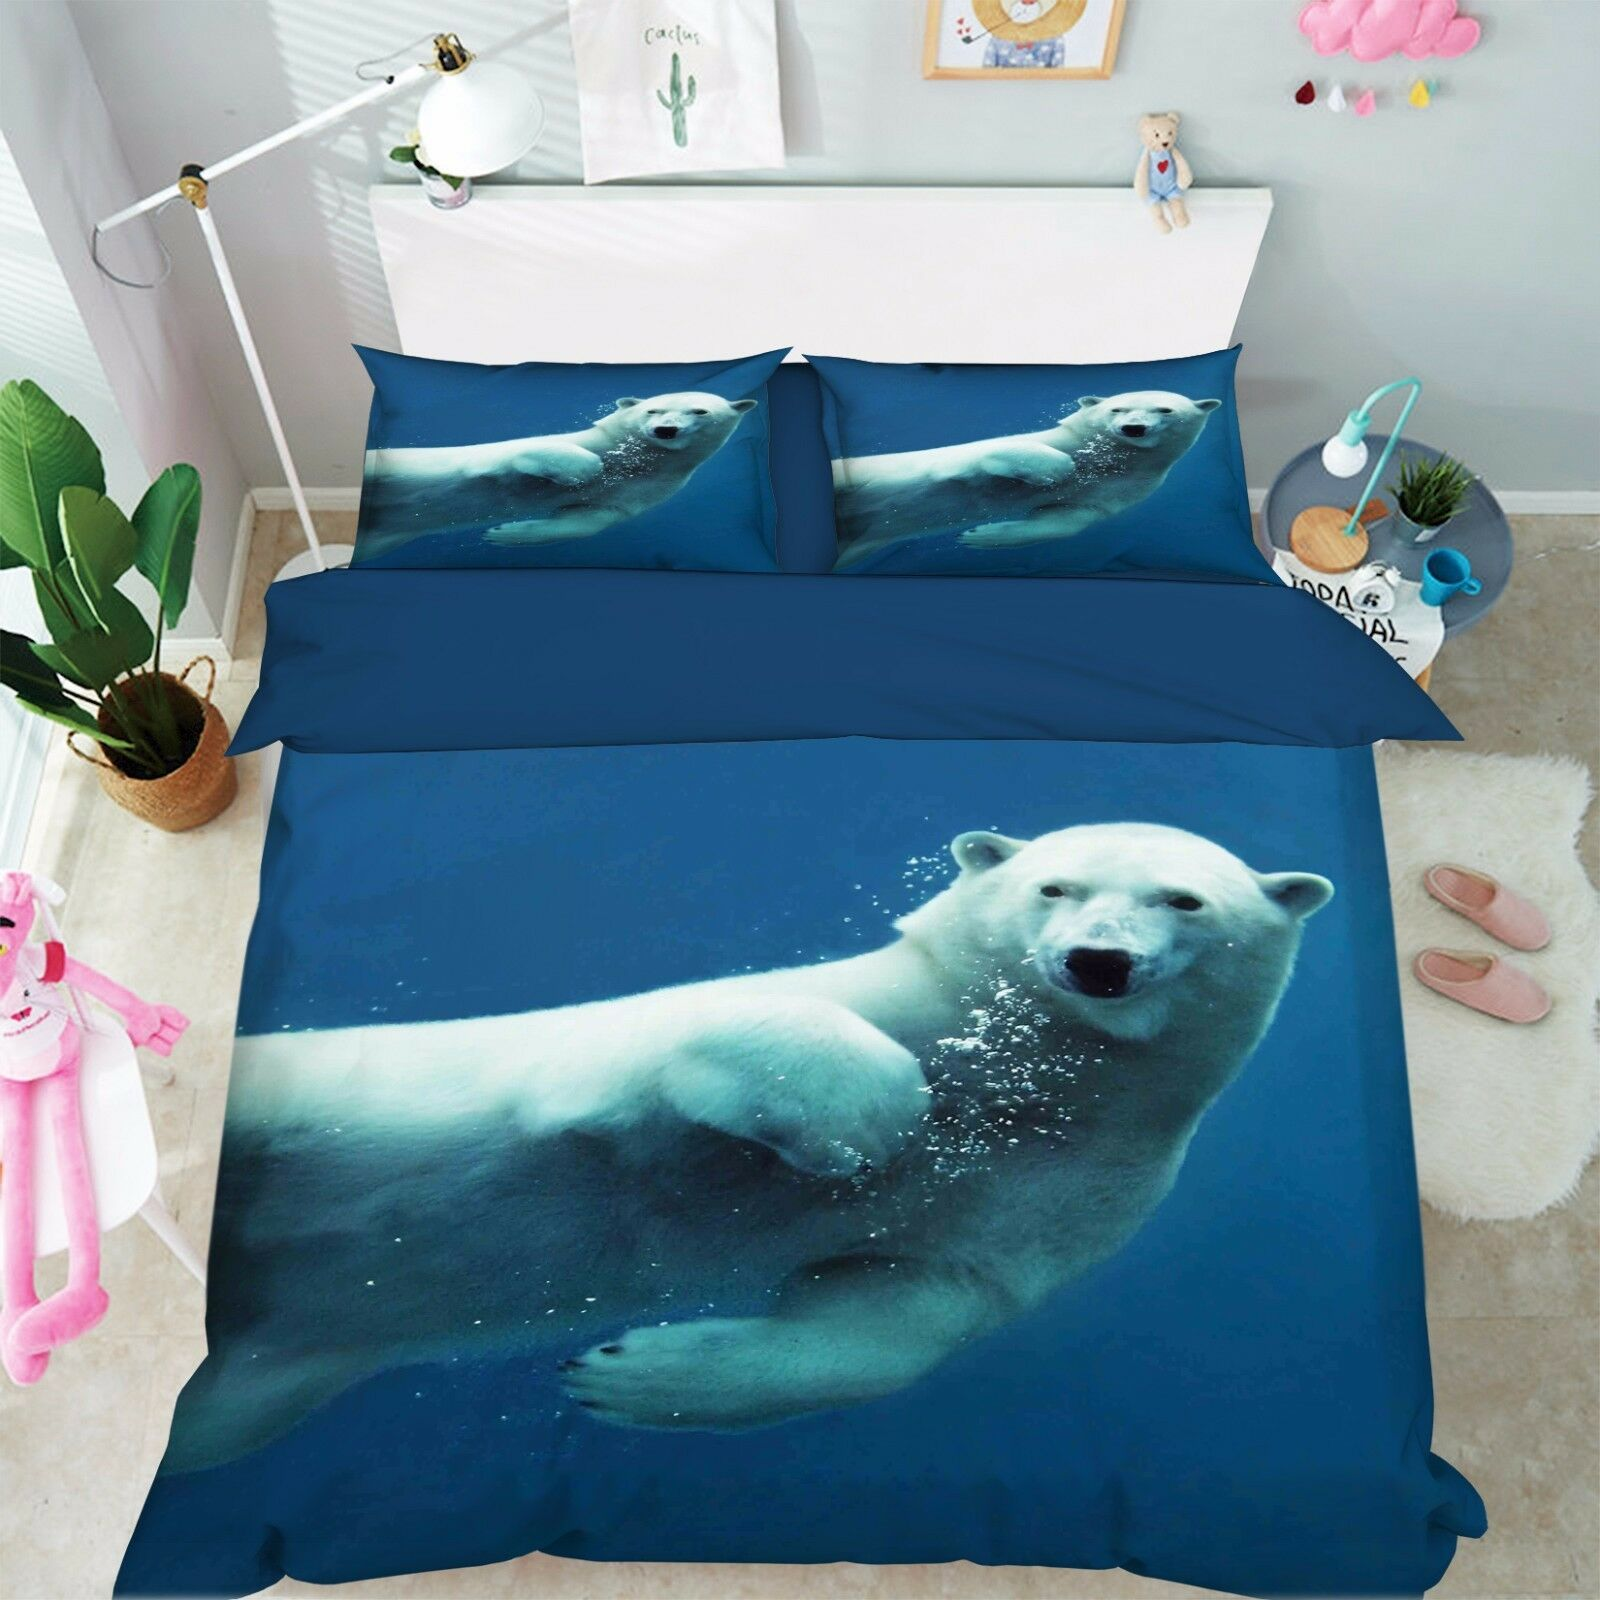 3D Sea Animal 25 Bed Pillowcases Quilt Duvet Cover Set Single Queen King Dimensione AU